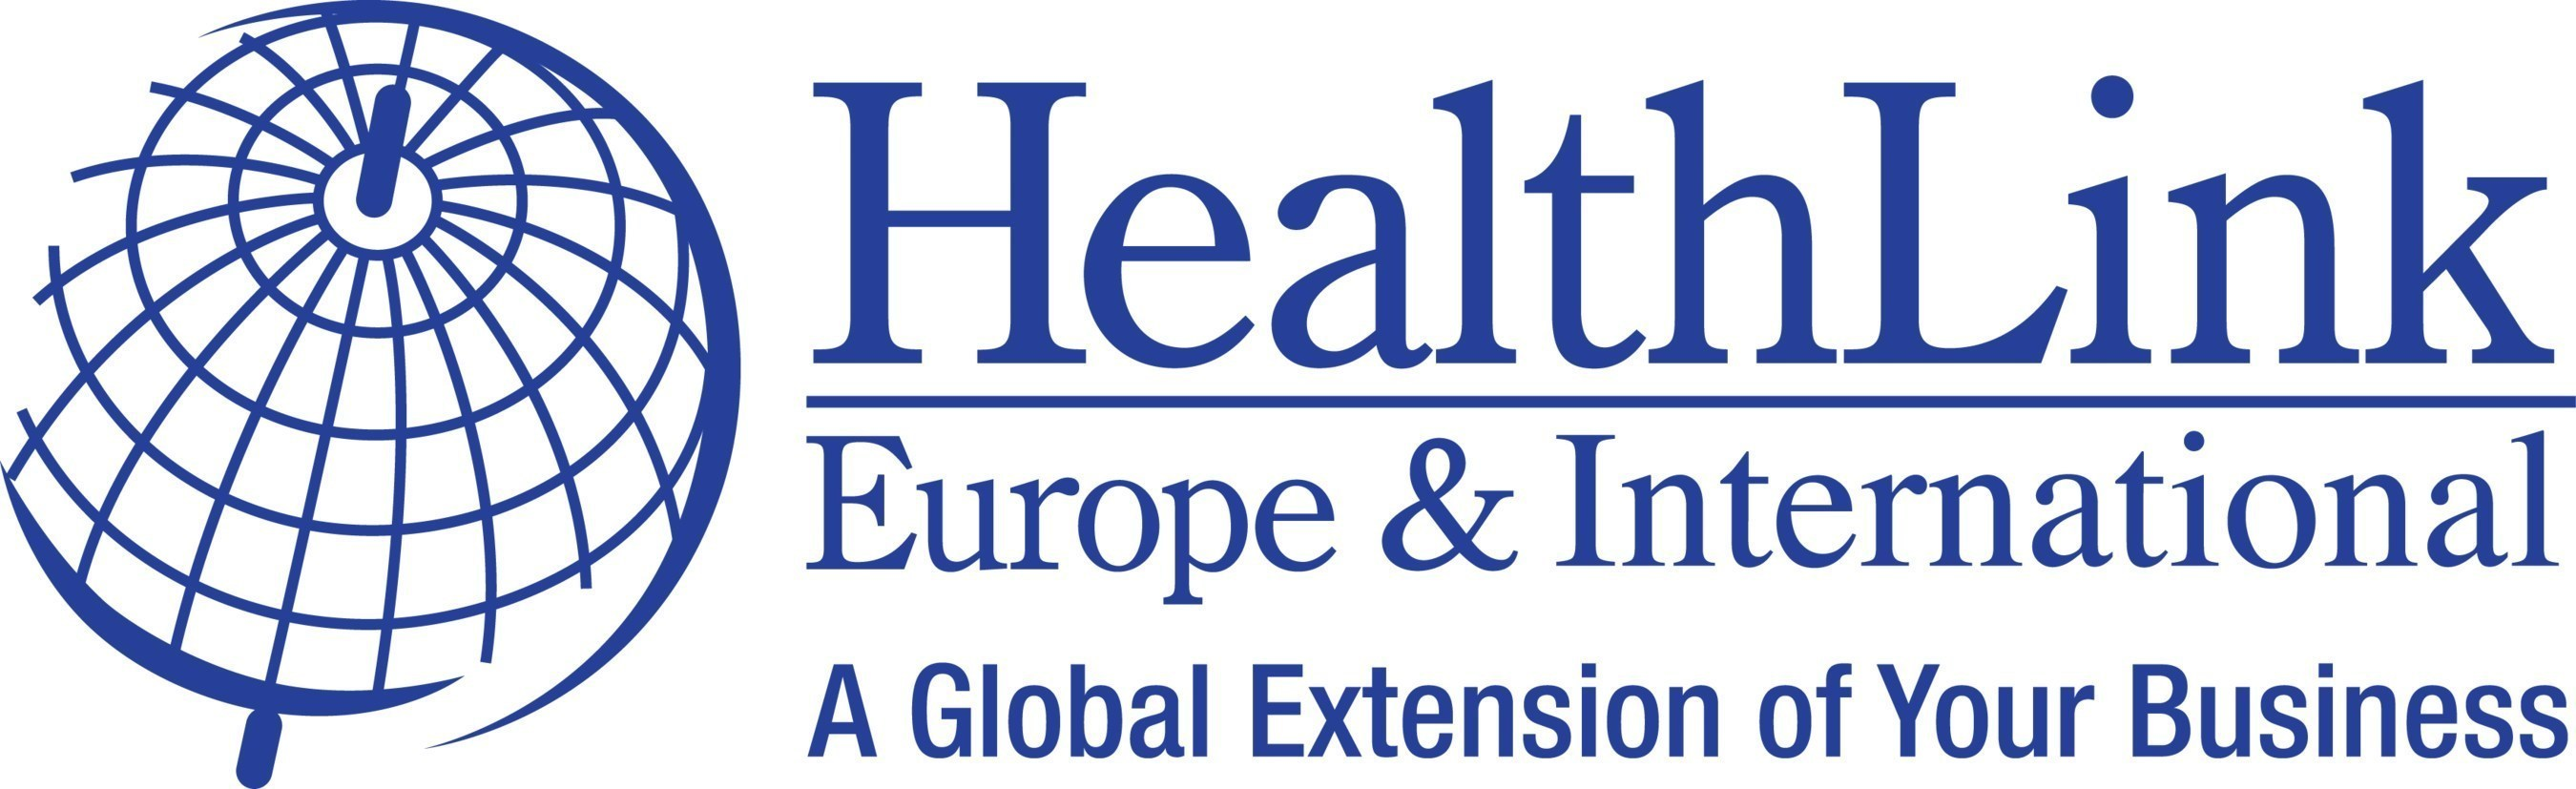 Healthlink Europe Amp International Acquired By Base